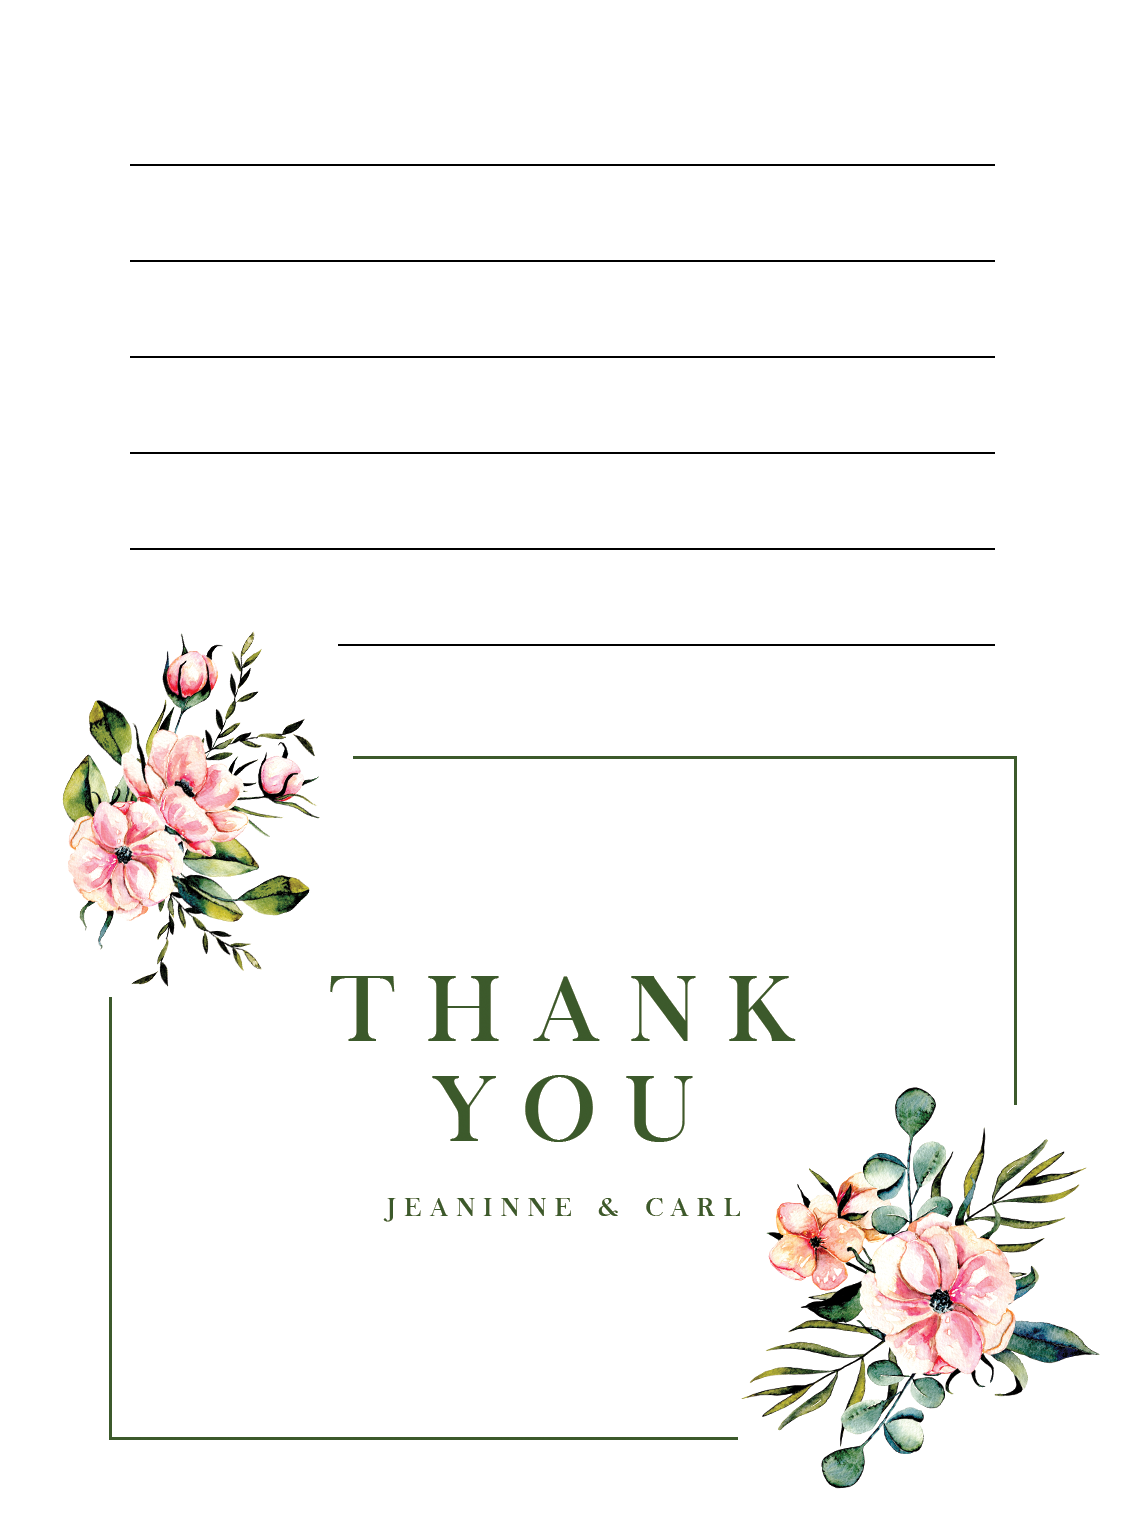 Thank You - US A1 CARD SIZE - COLOR 1_RGB.png